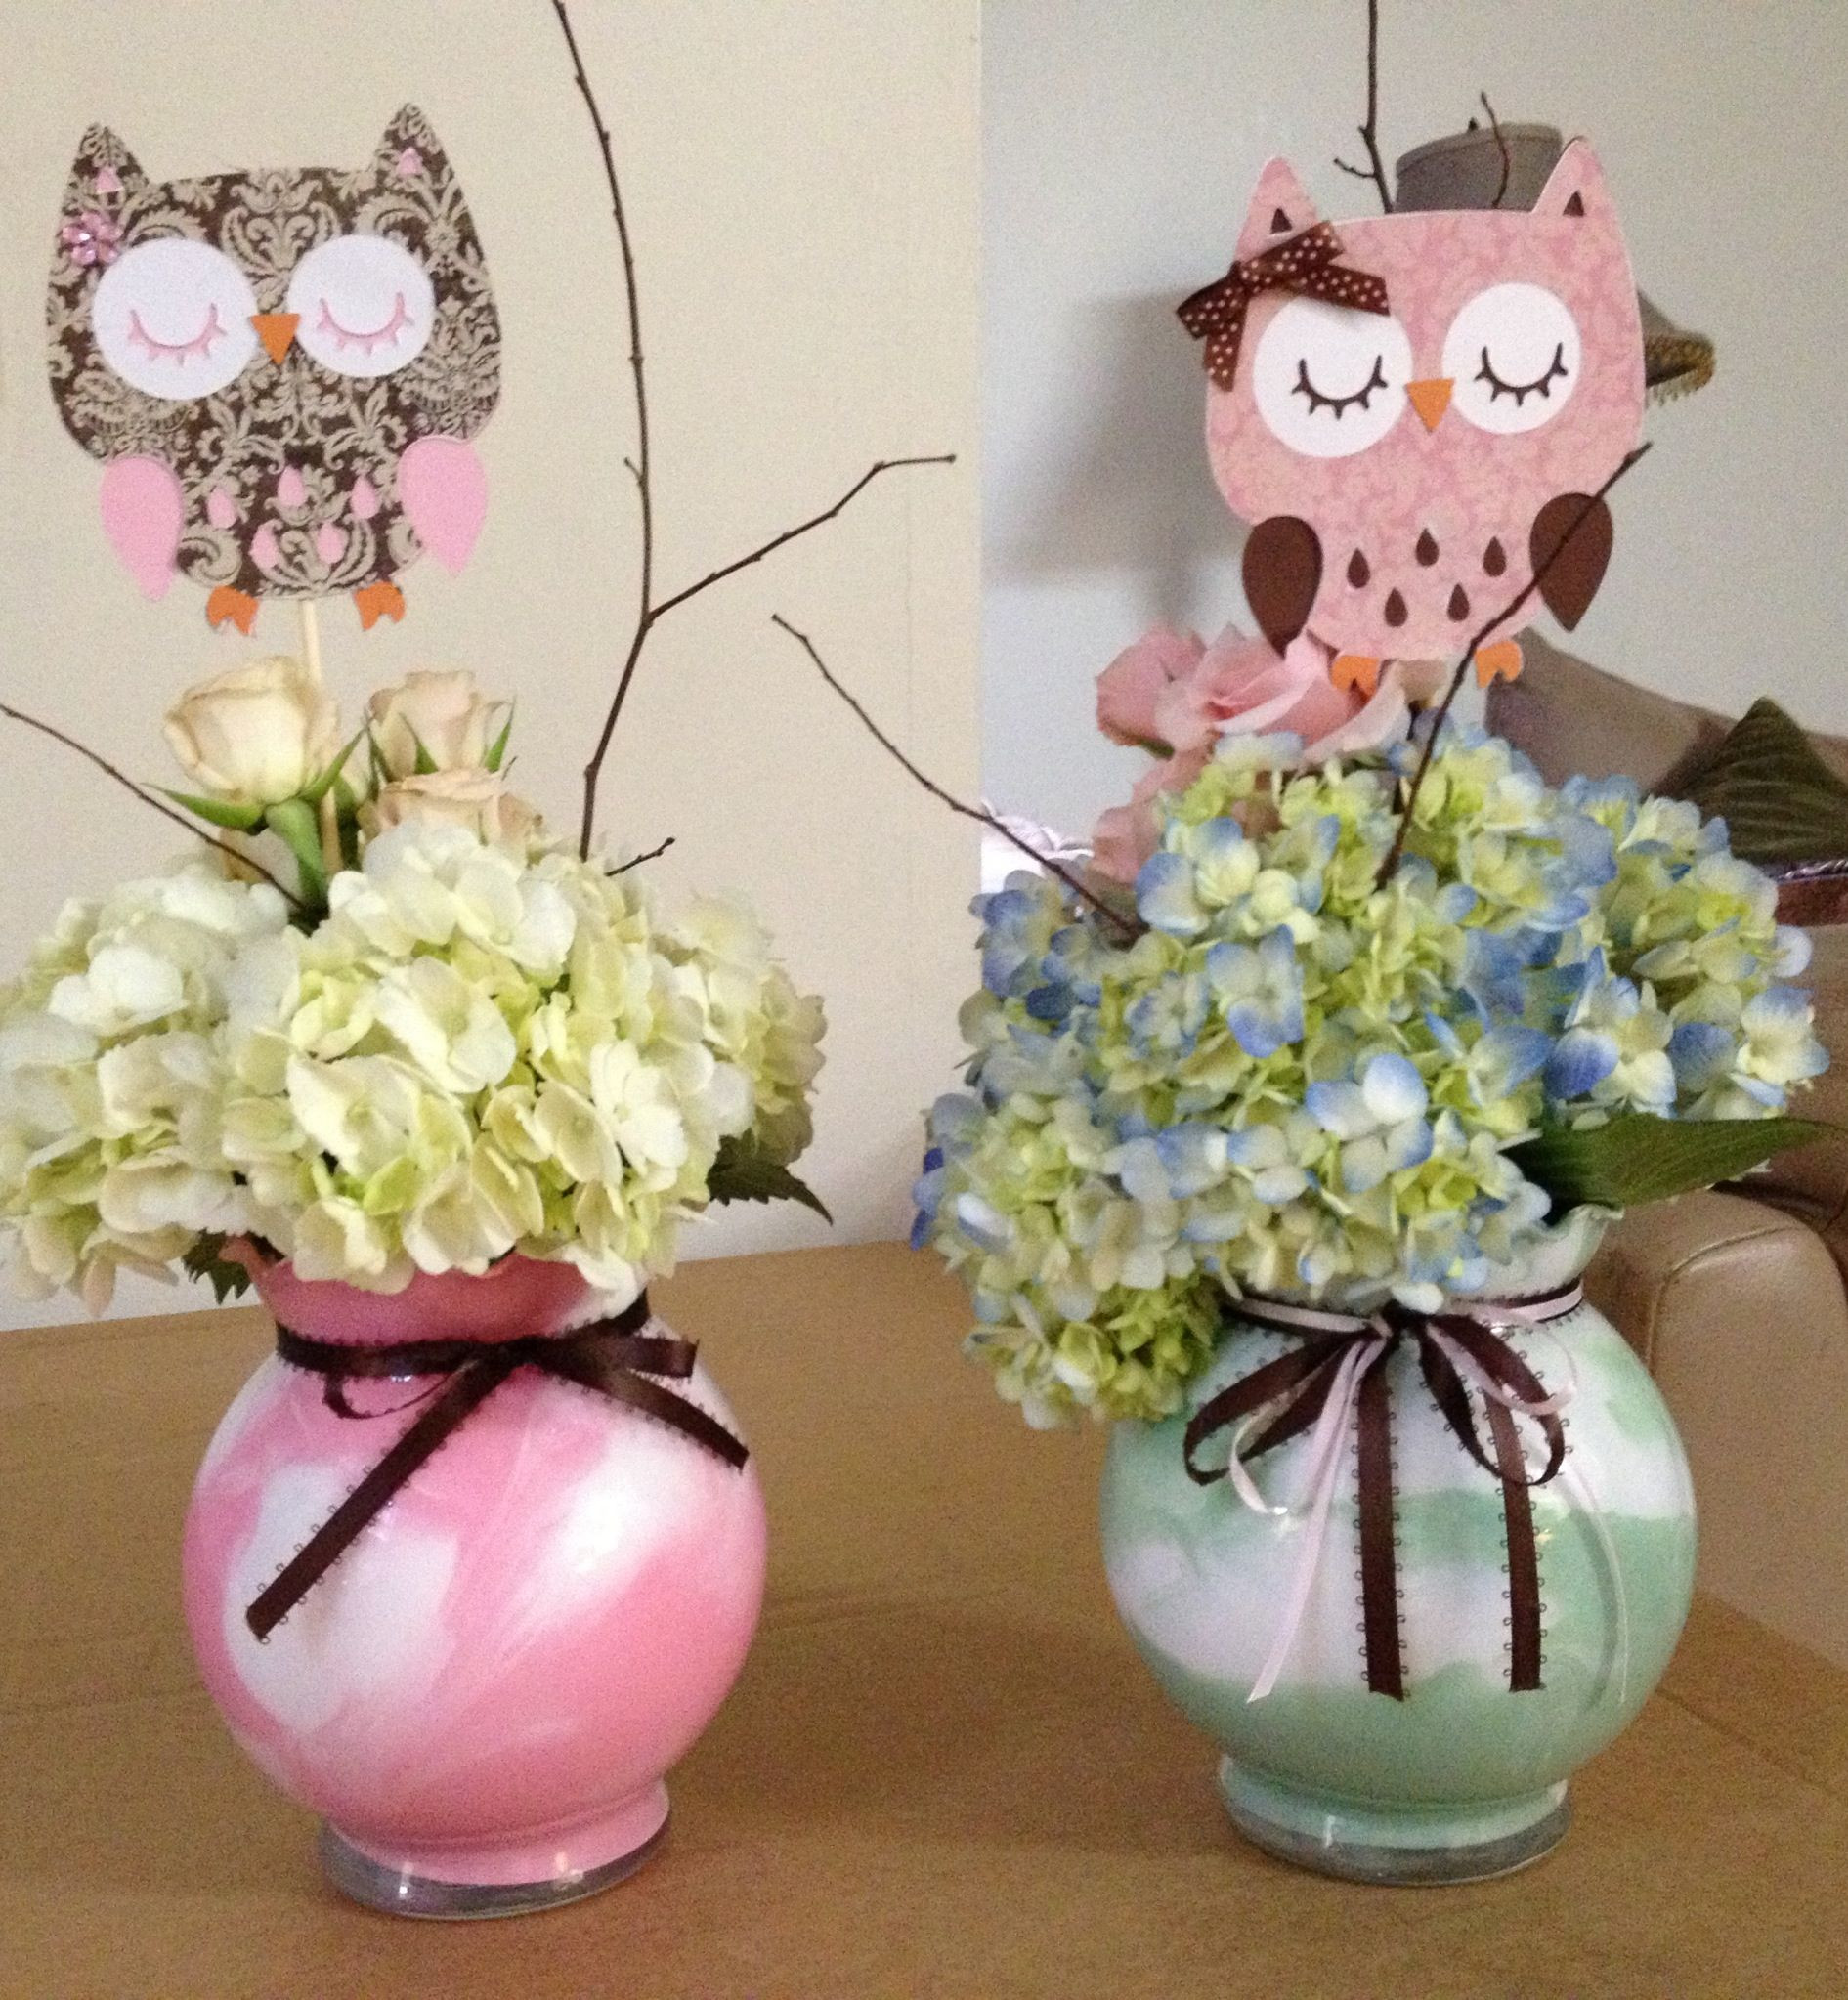 DIY Owl Baby Shower Decorations  My centerpieces I made with chach21 owl babyshower